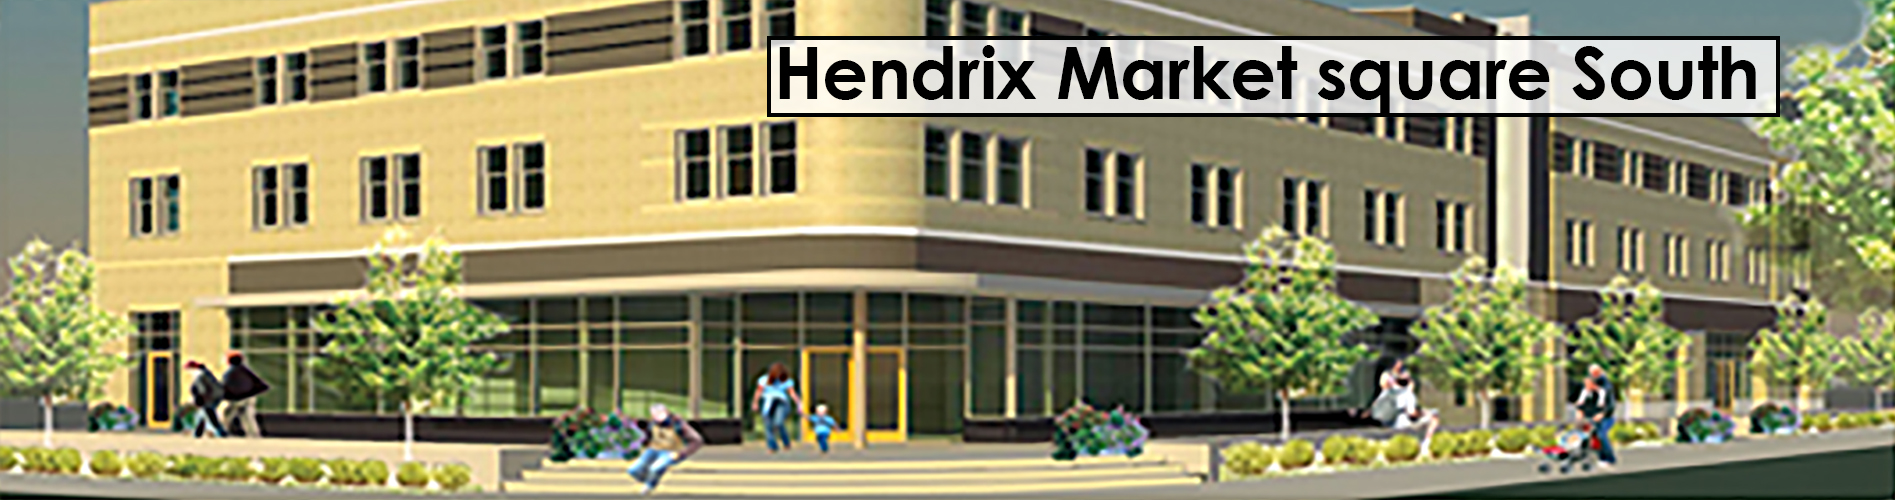 Nahbolz-Hendrix-Market-Square-South-Conway-AR-41